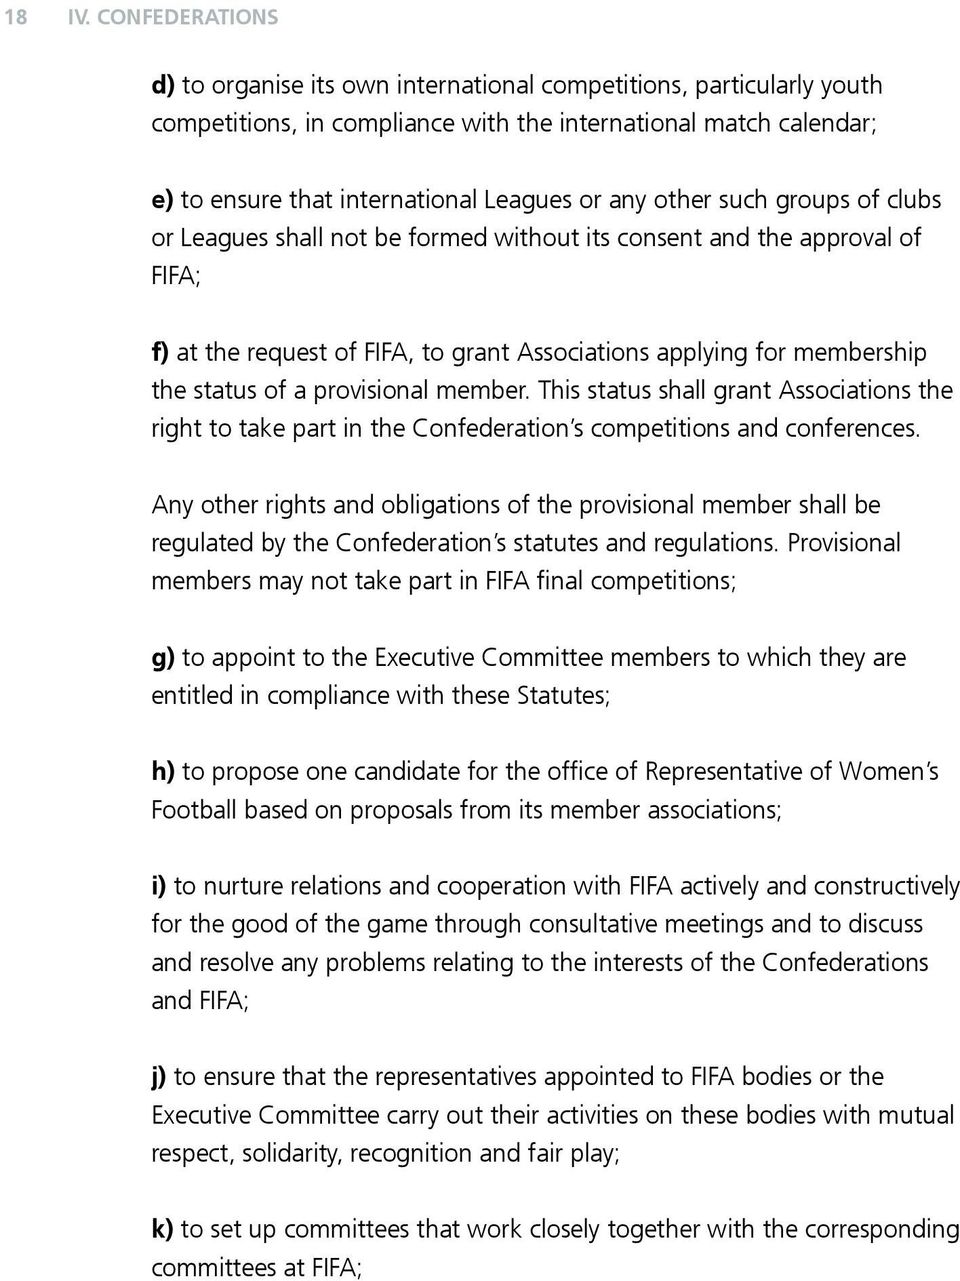 other such groups of clubs or Leagues shall not be formed without its consent and the approval of FIFA; f) at the request of FIFA, to grant Associations applying for membership the status of a